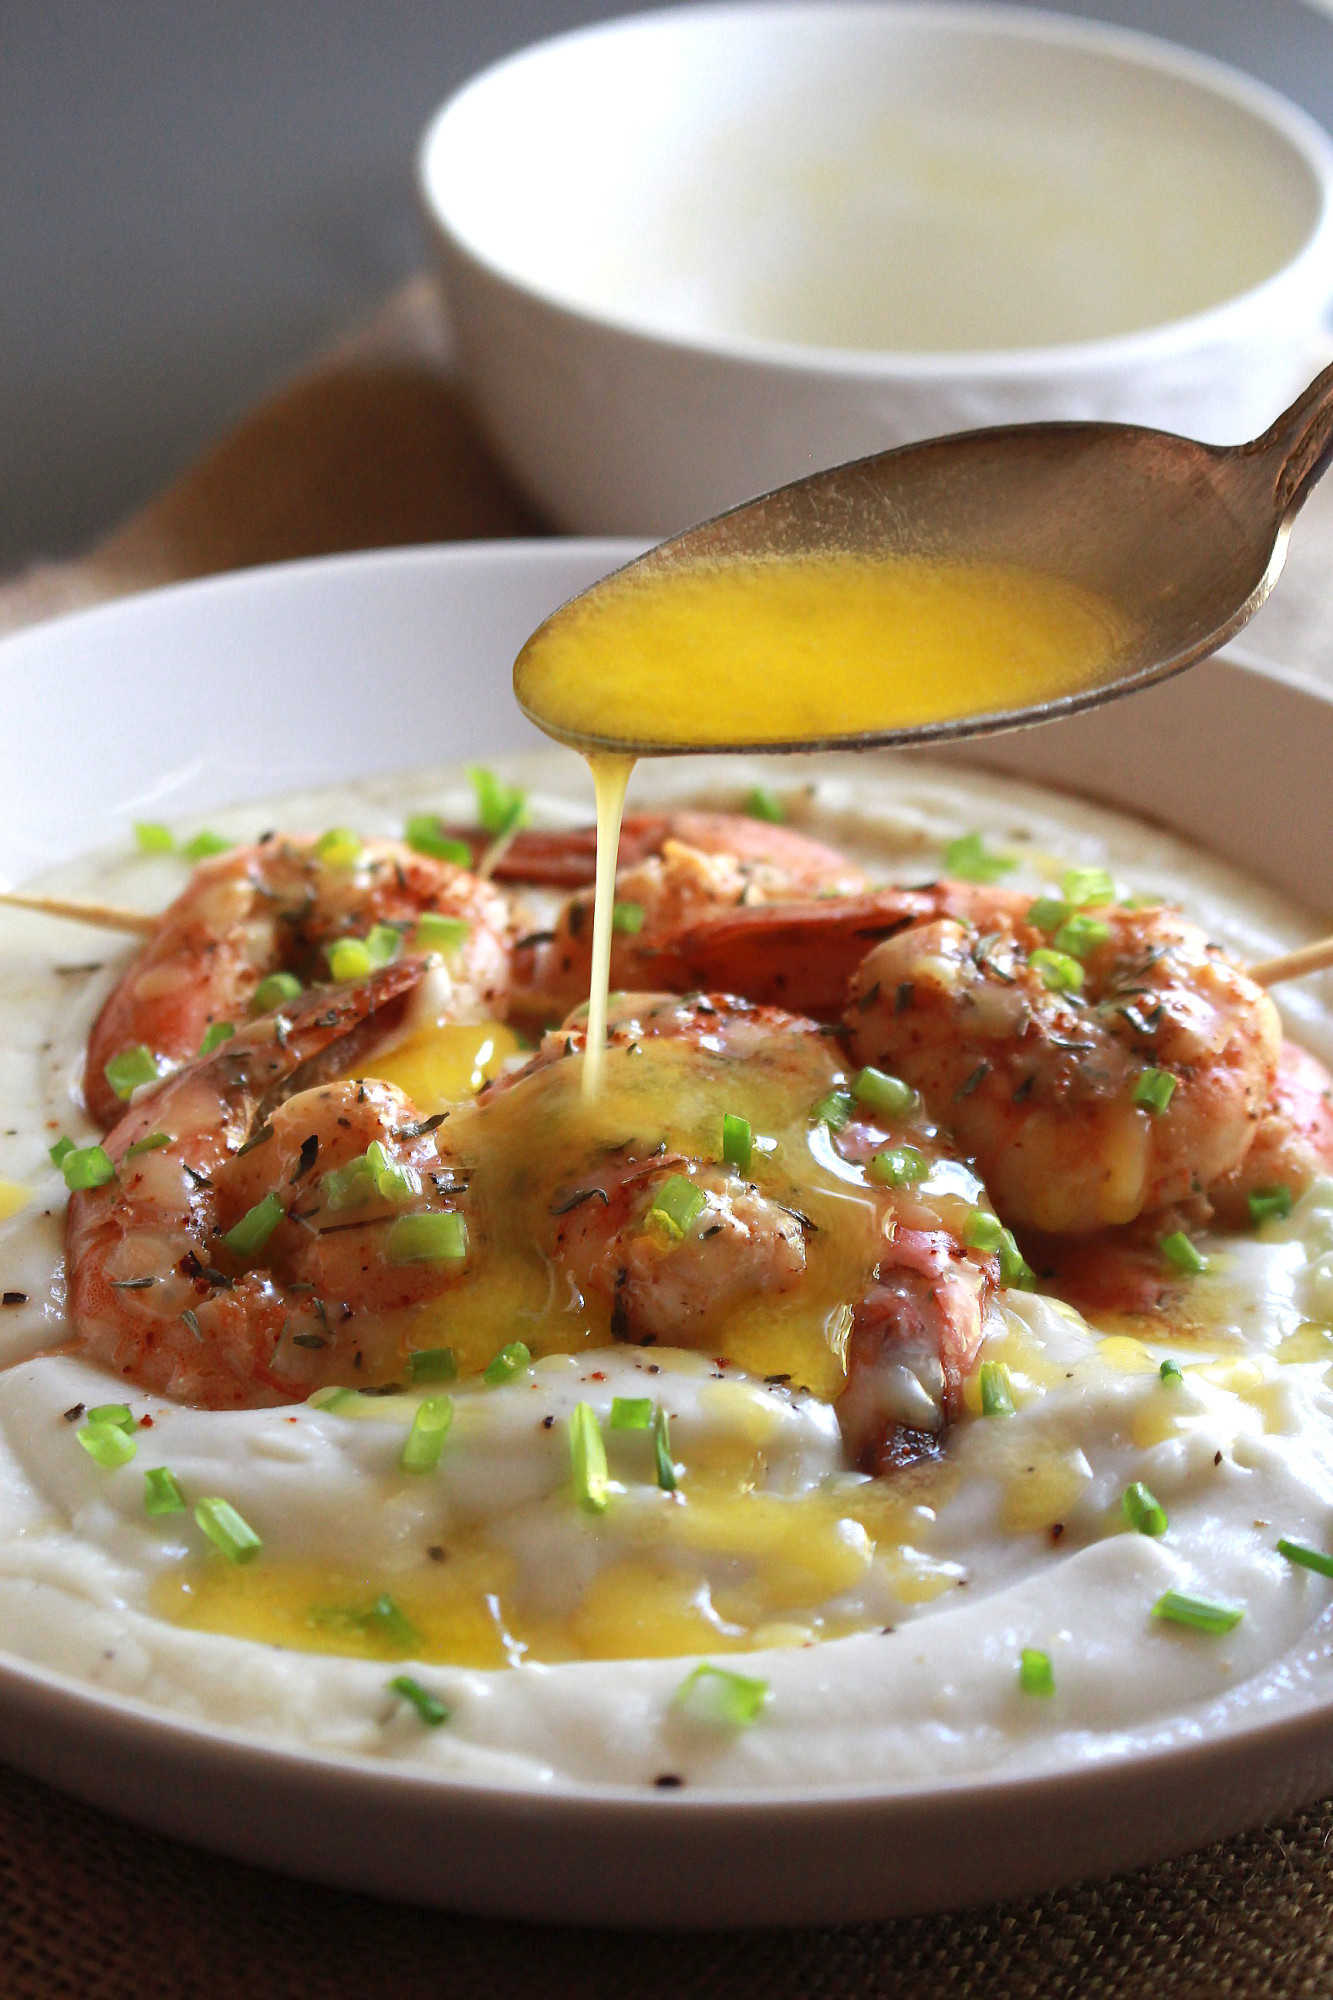 GARLIC LIME SHRIMP with CAULIFLOWER PURÉE